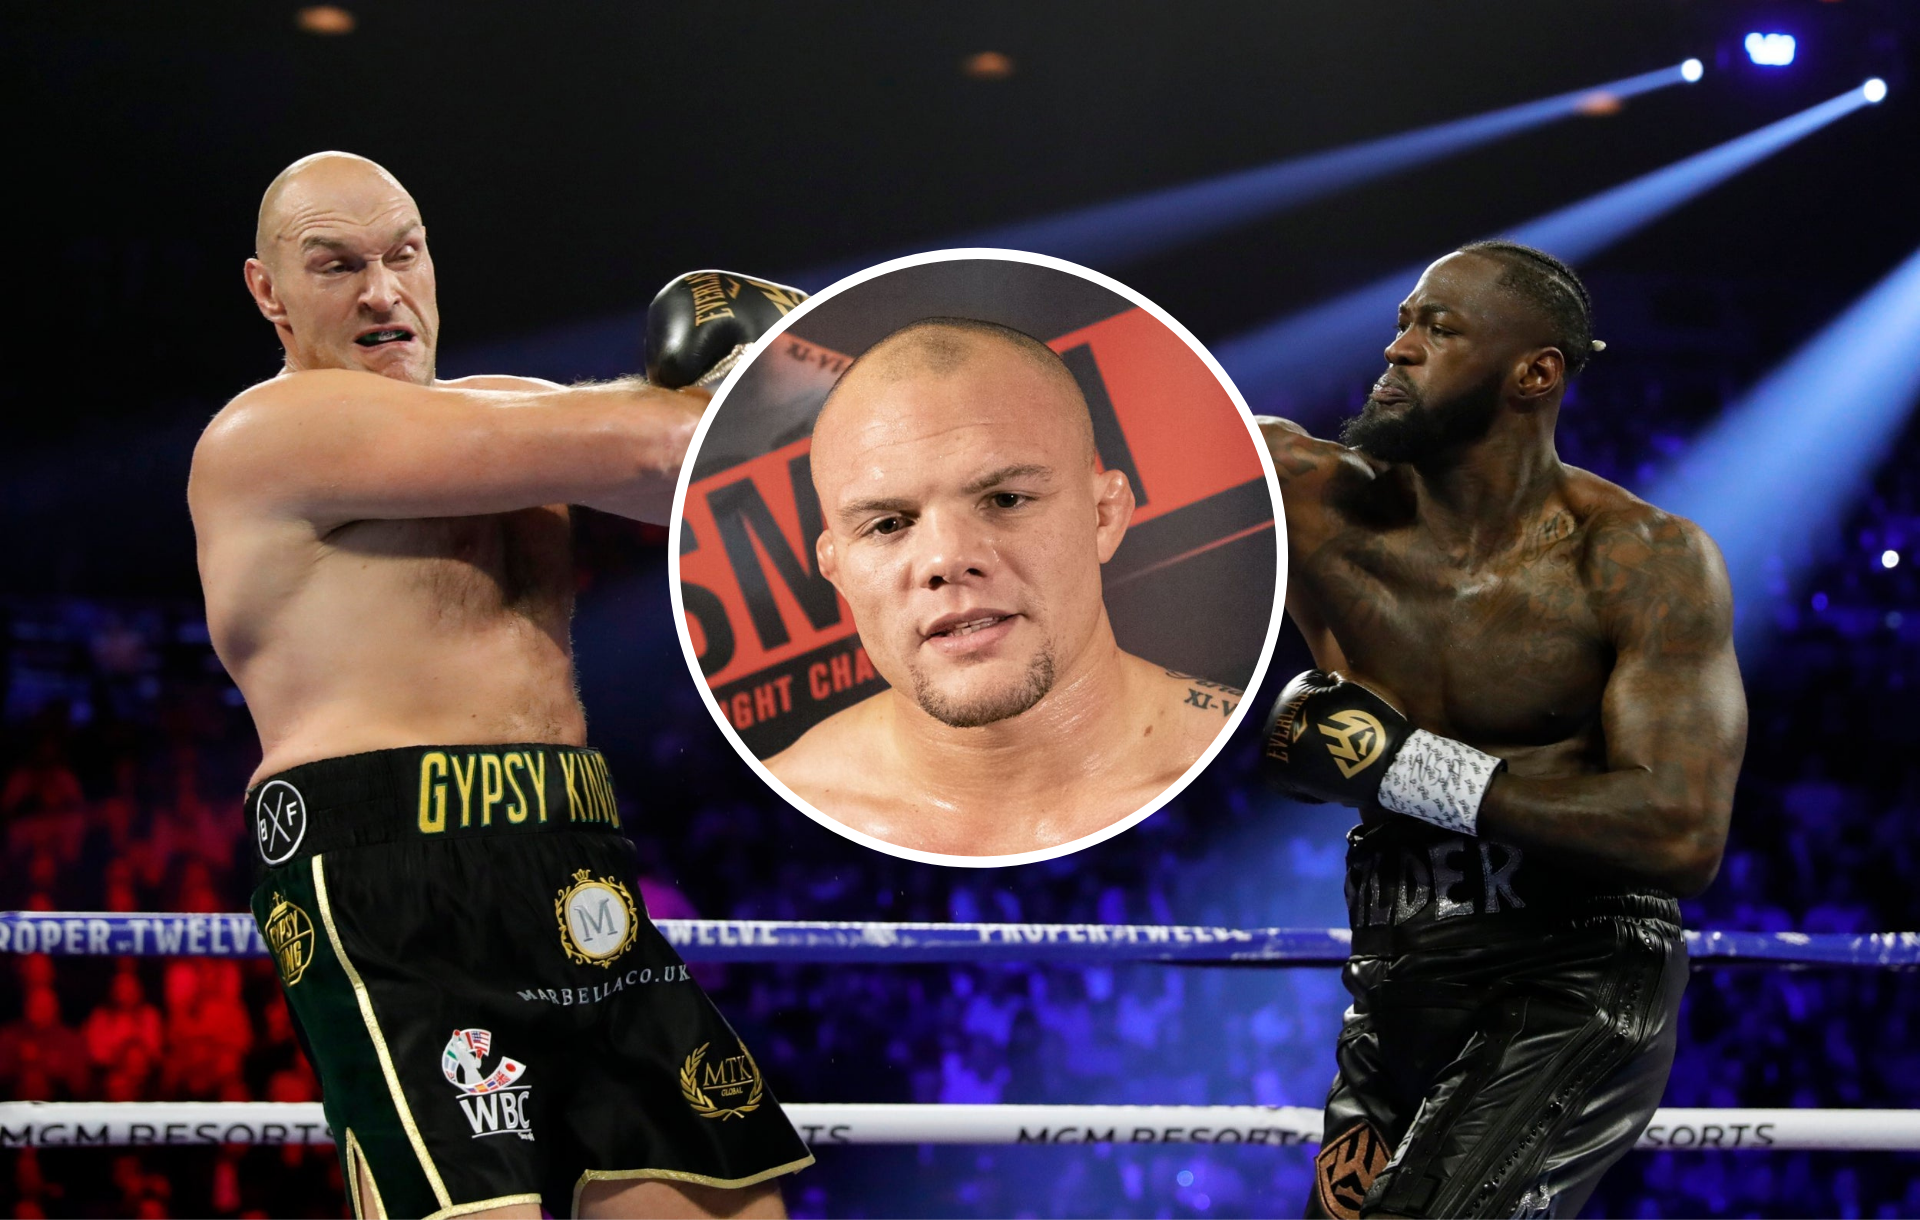 Anthony Smith doesn't think Deontay Wilder will ever beat Tyson Fury - Anthony